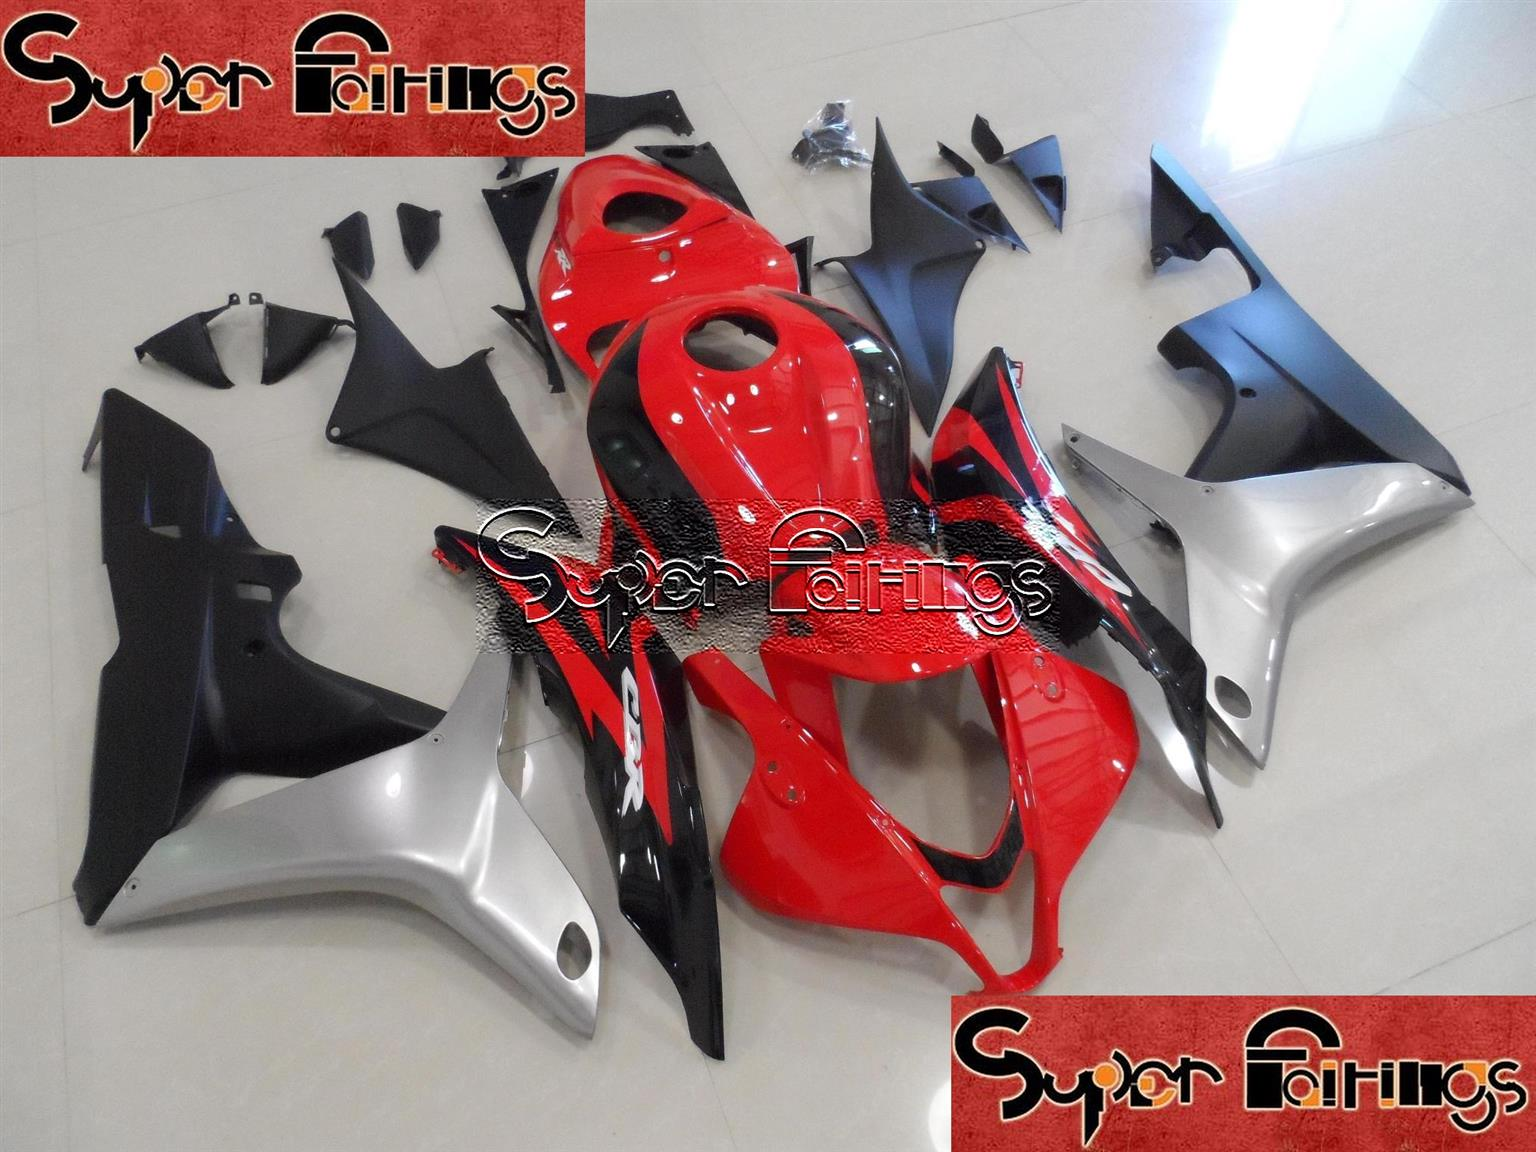 Super Fairings Motorcycle fairing kits and accessories